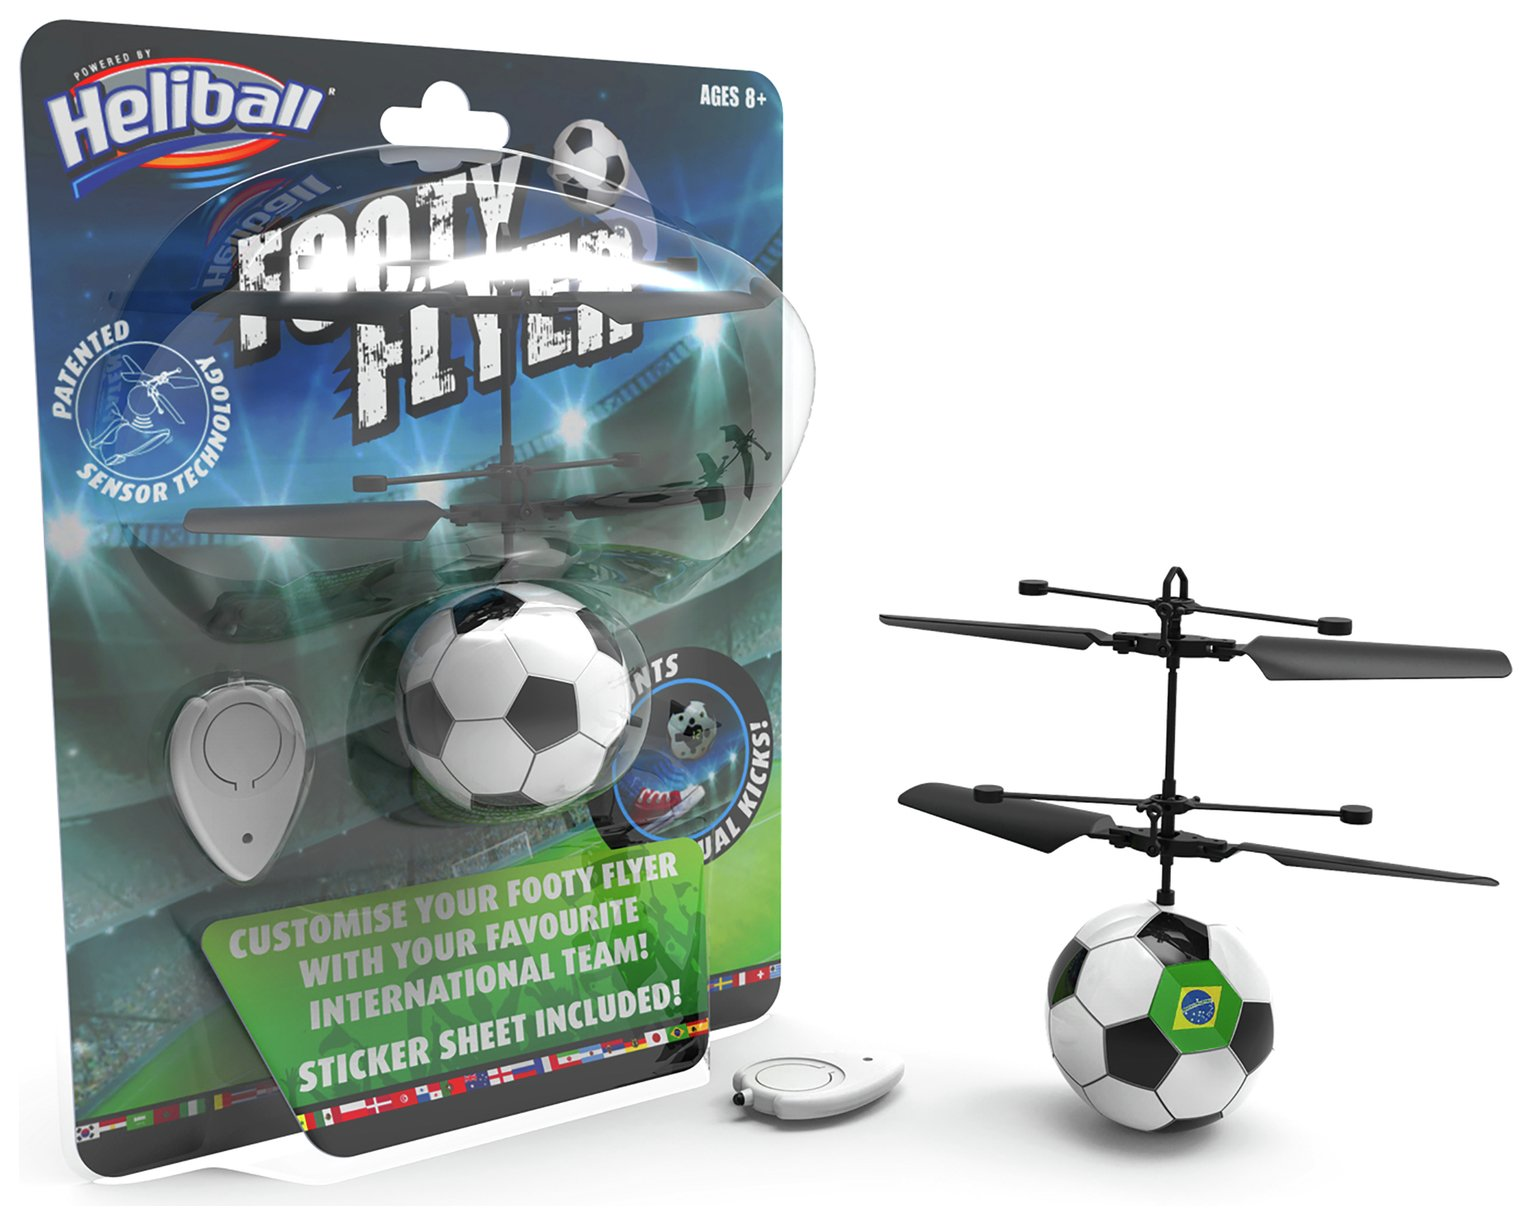 Heliball Footy Flyer